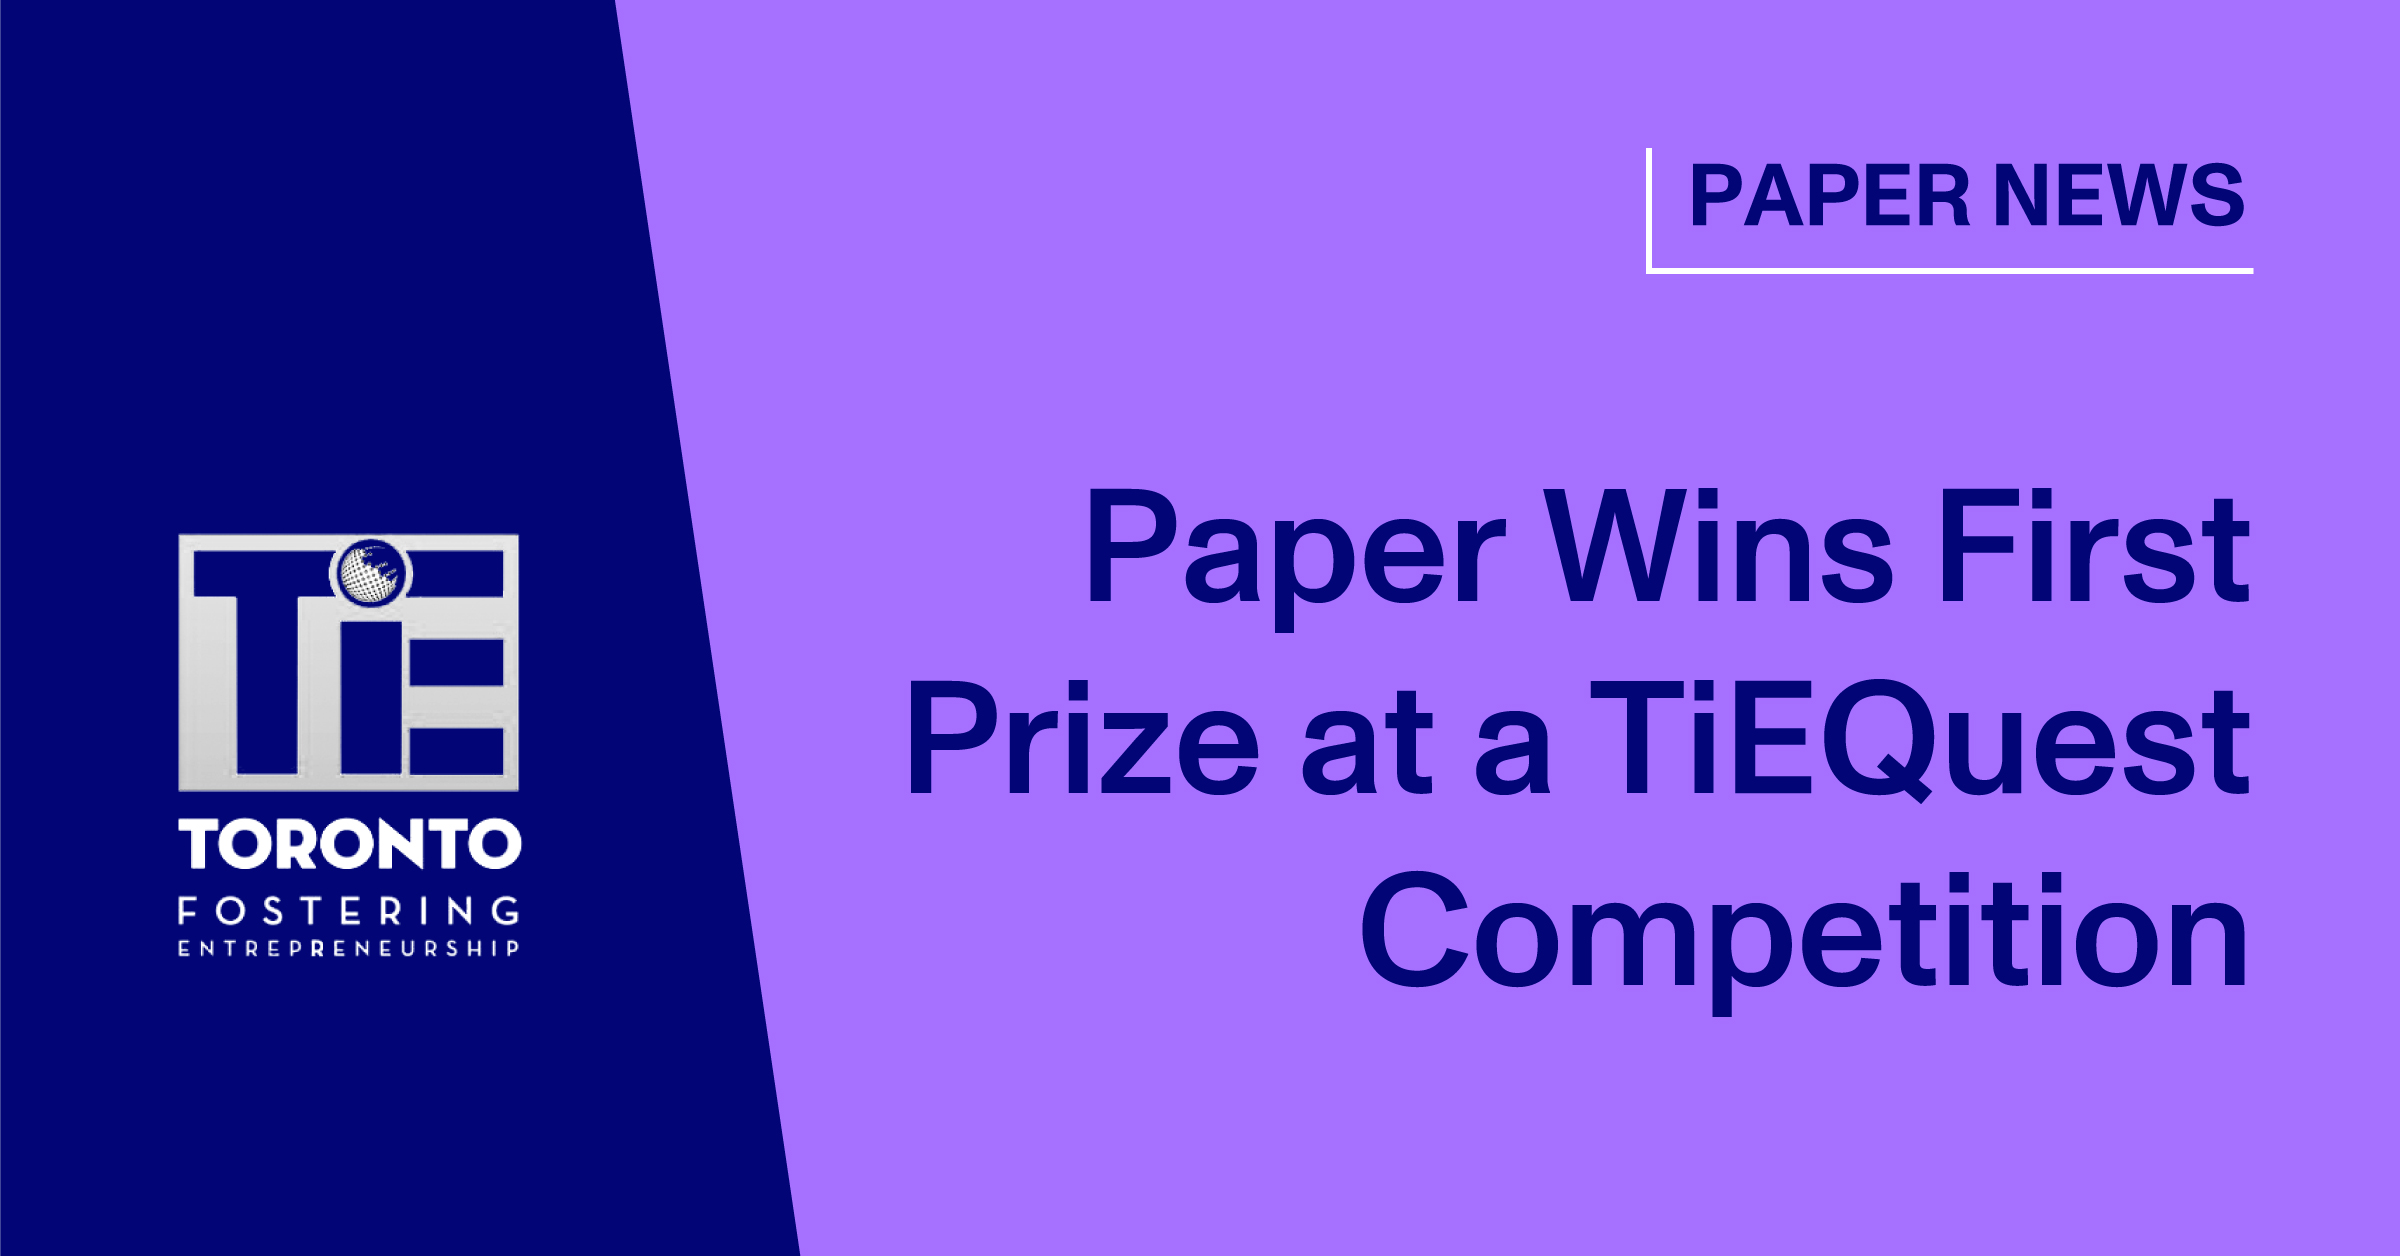 Paper Wins First Prize at a TiEQuest Competition